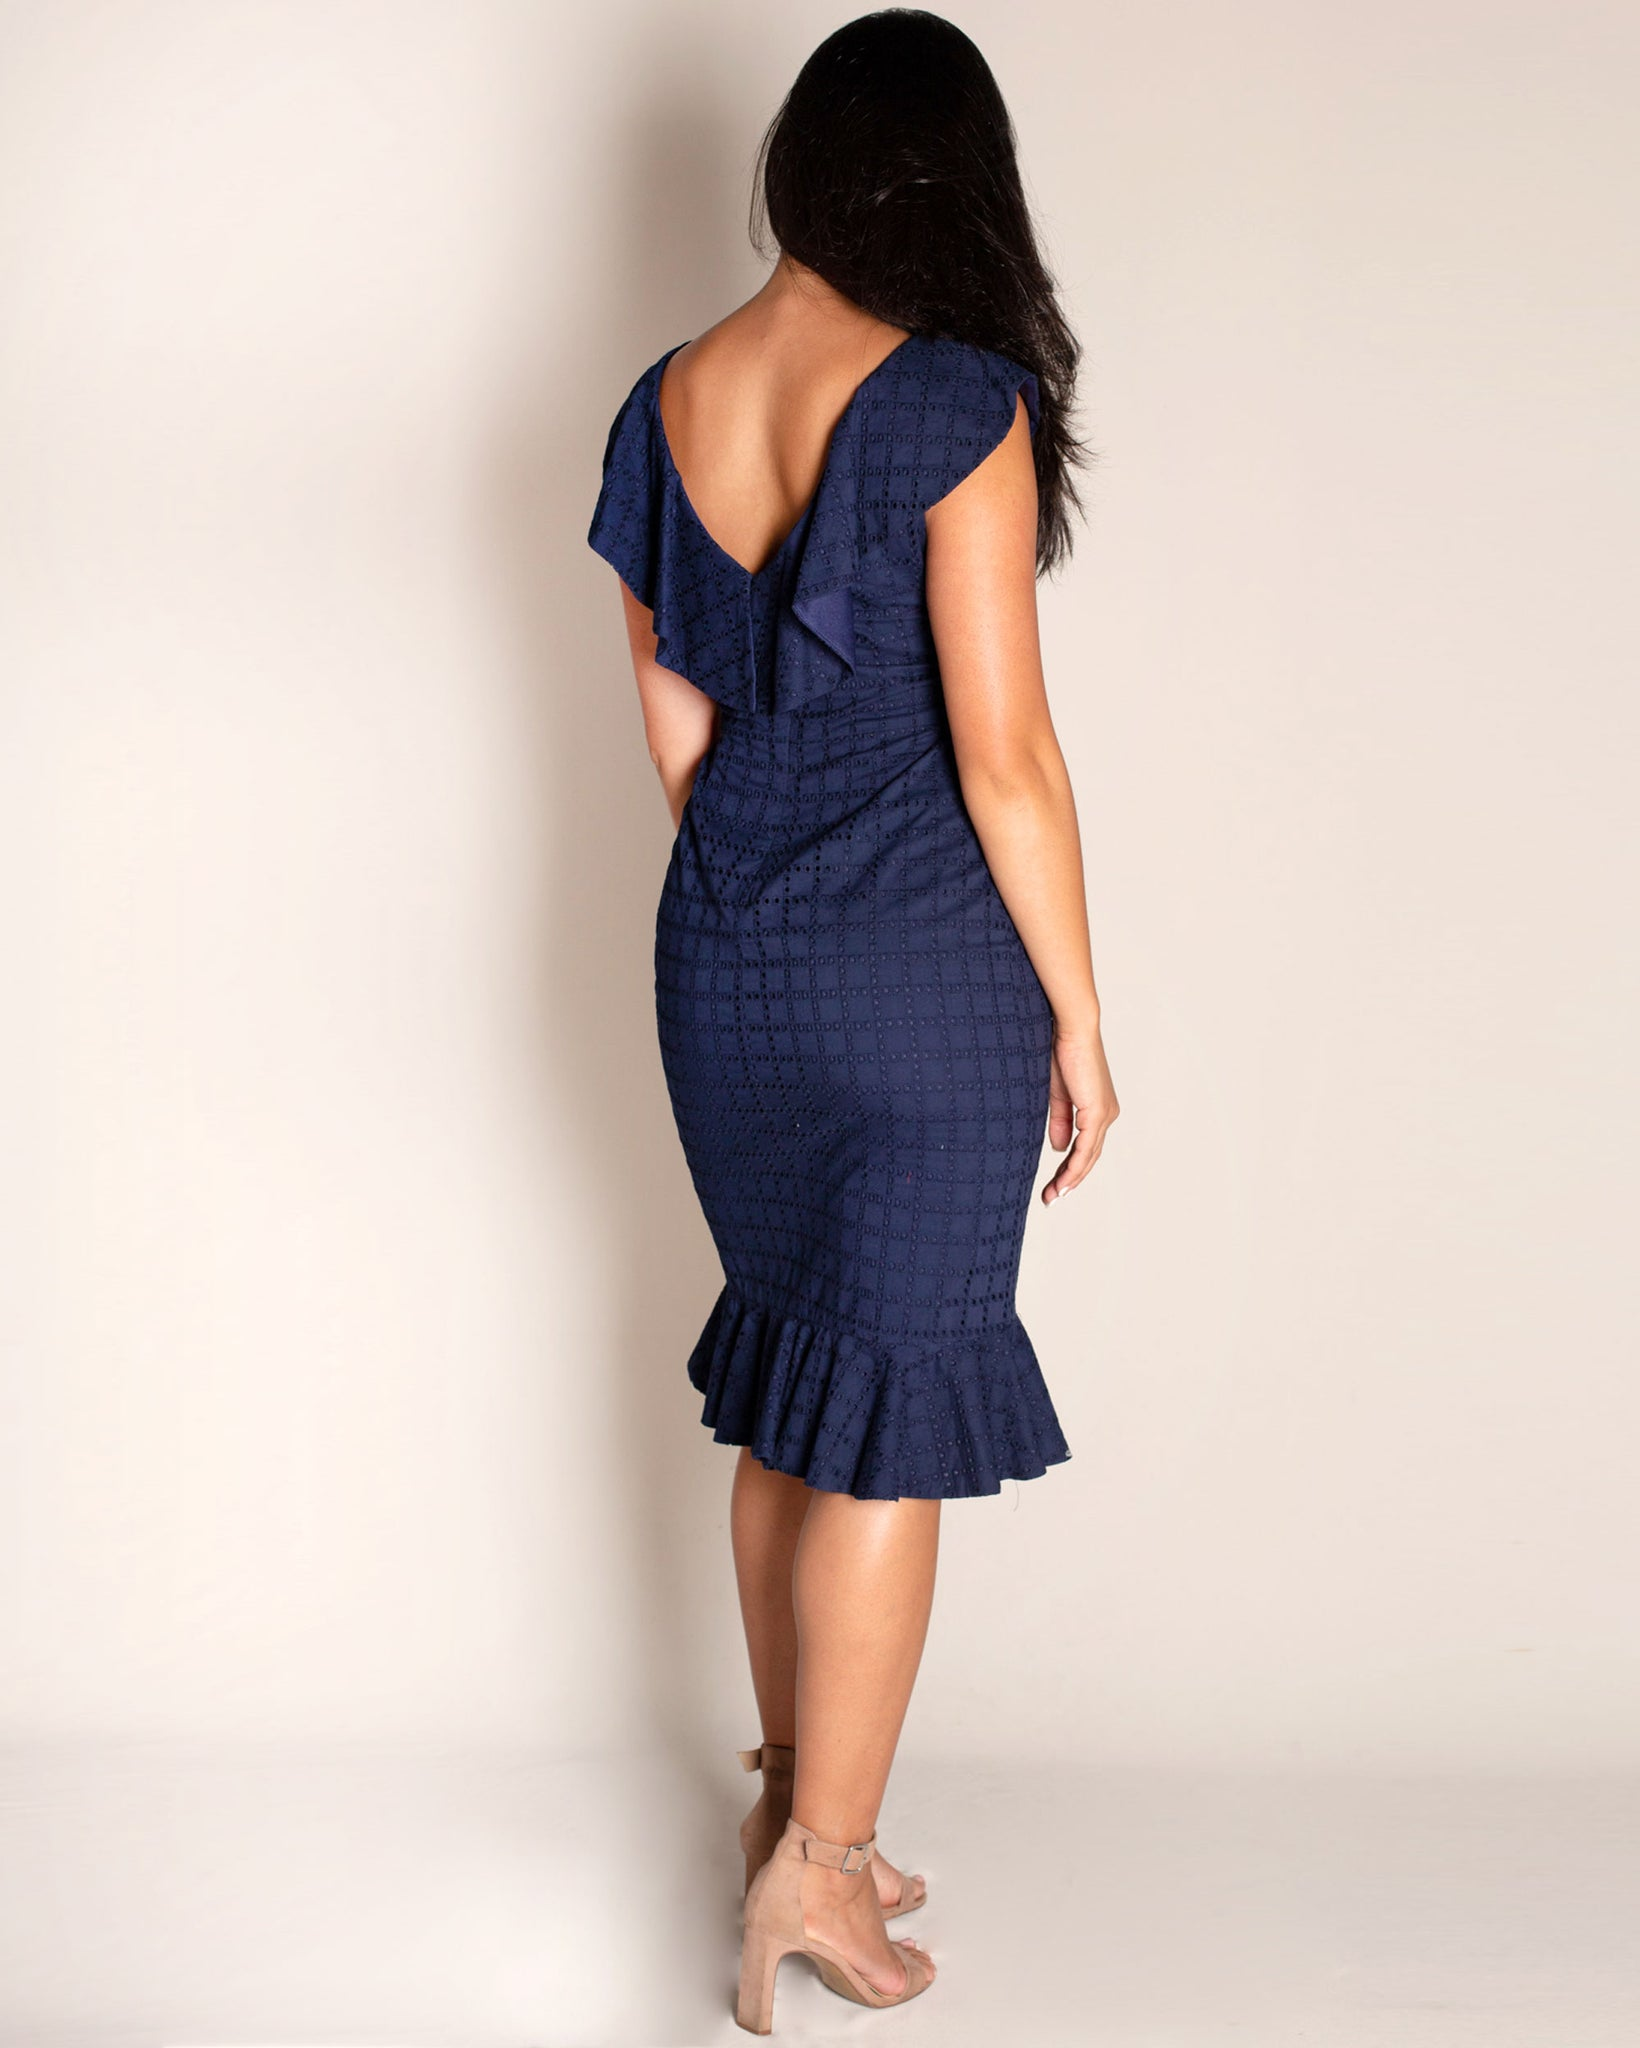 The Payton Dress